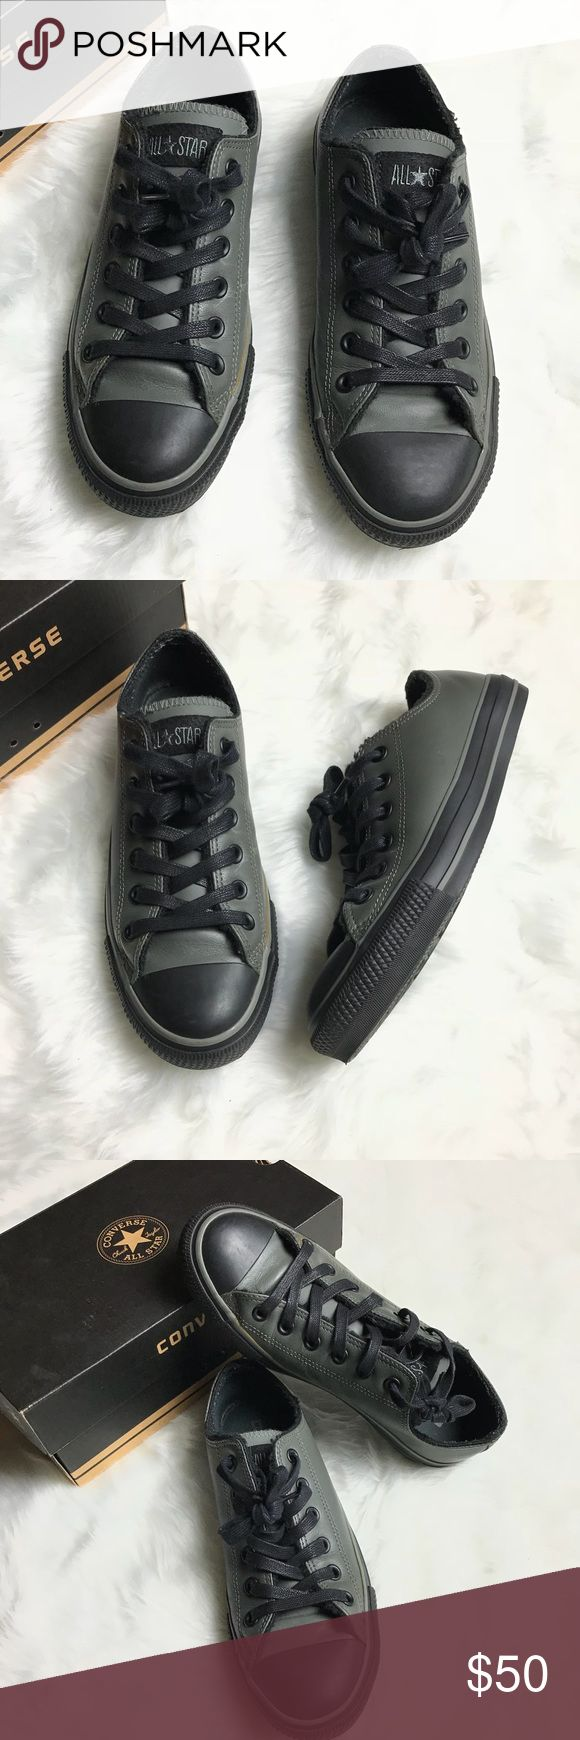 Converse Chuck Taylor Leather Low Charcoal Shoes Converse Leather Low Charcoal Shoes  Unisex Women's Size 8 Men's Size 6  Used only a couple of times.  Thanks for visiting! ❤️ Converse Shoes Sneakers